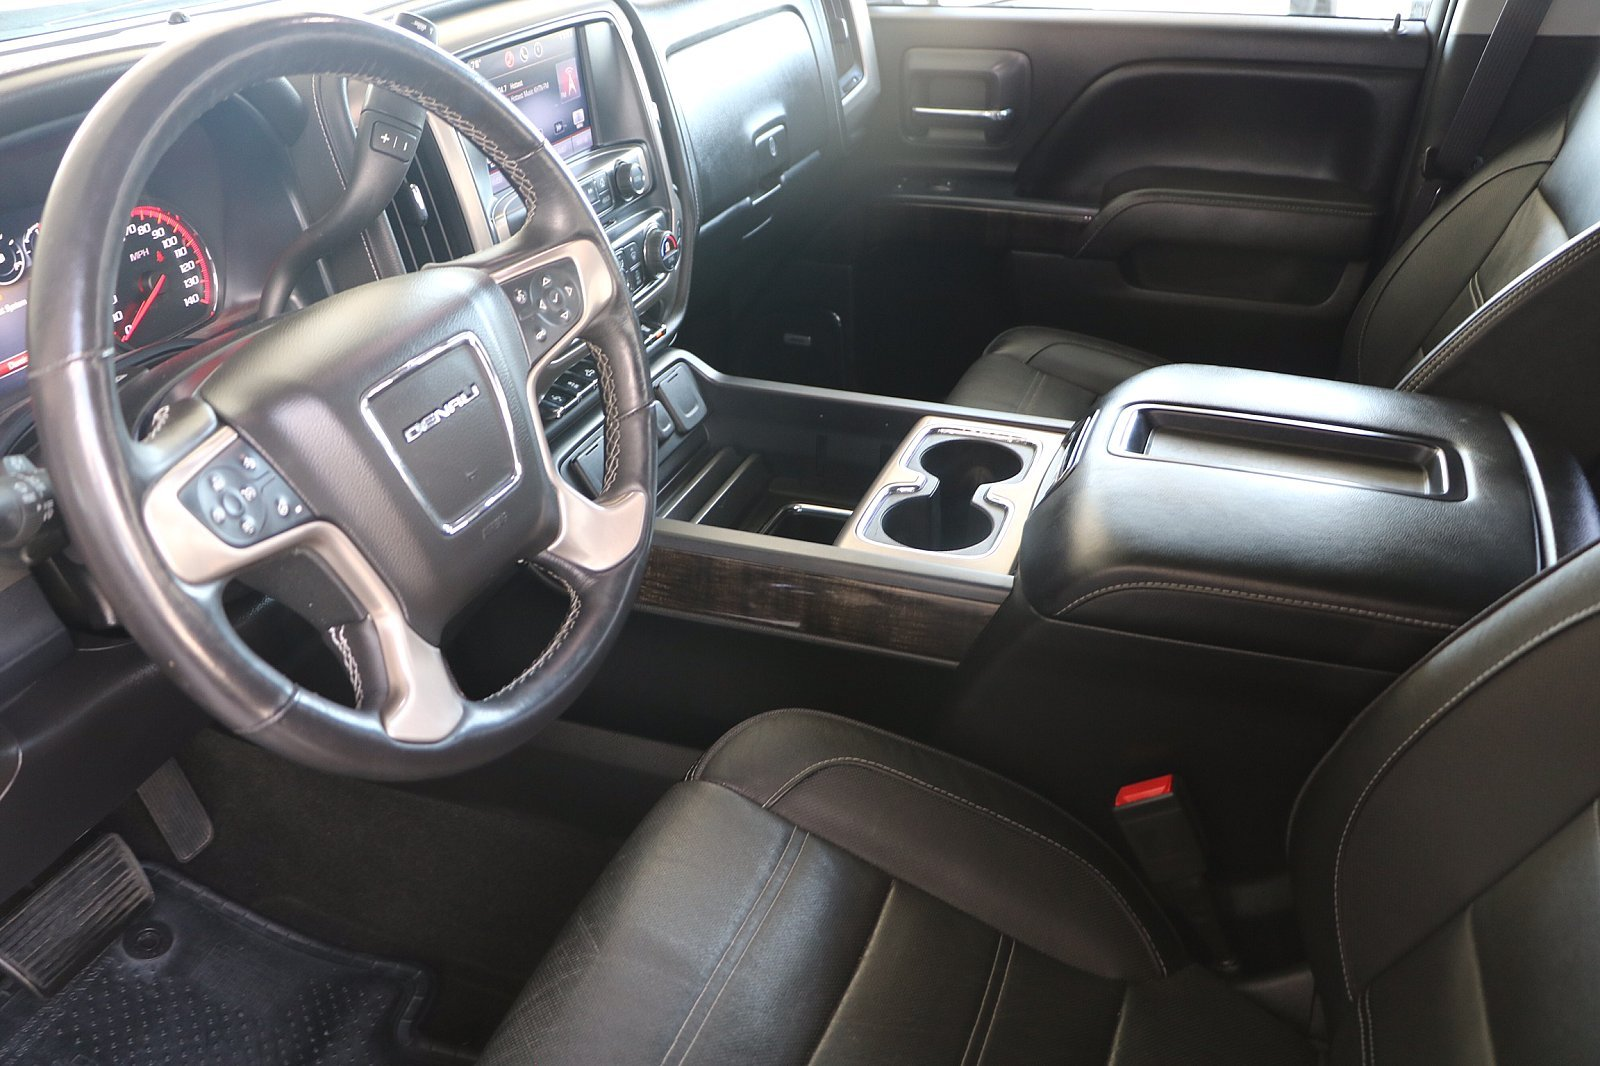 Pre-Owned 2015 GMC Sierra 2500HD available WiFi Denali